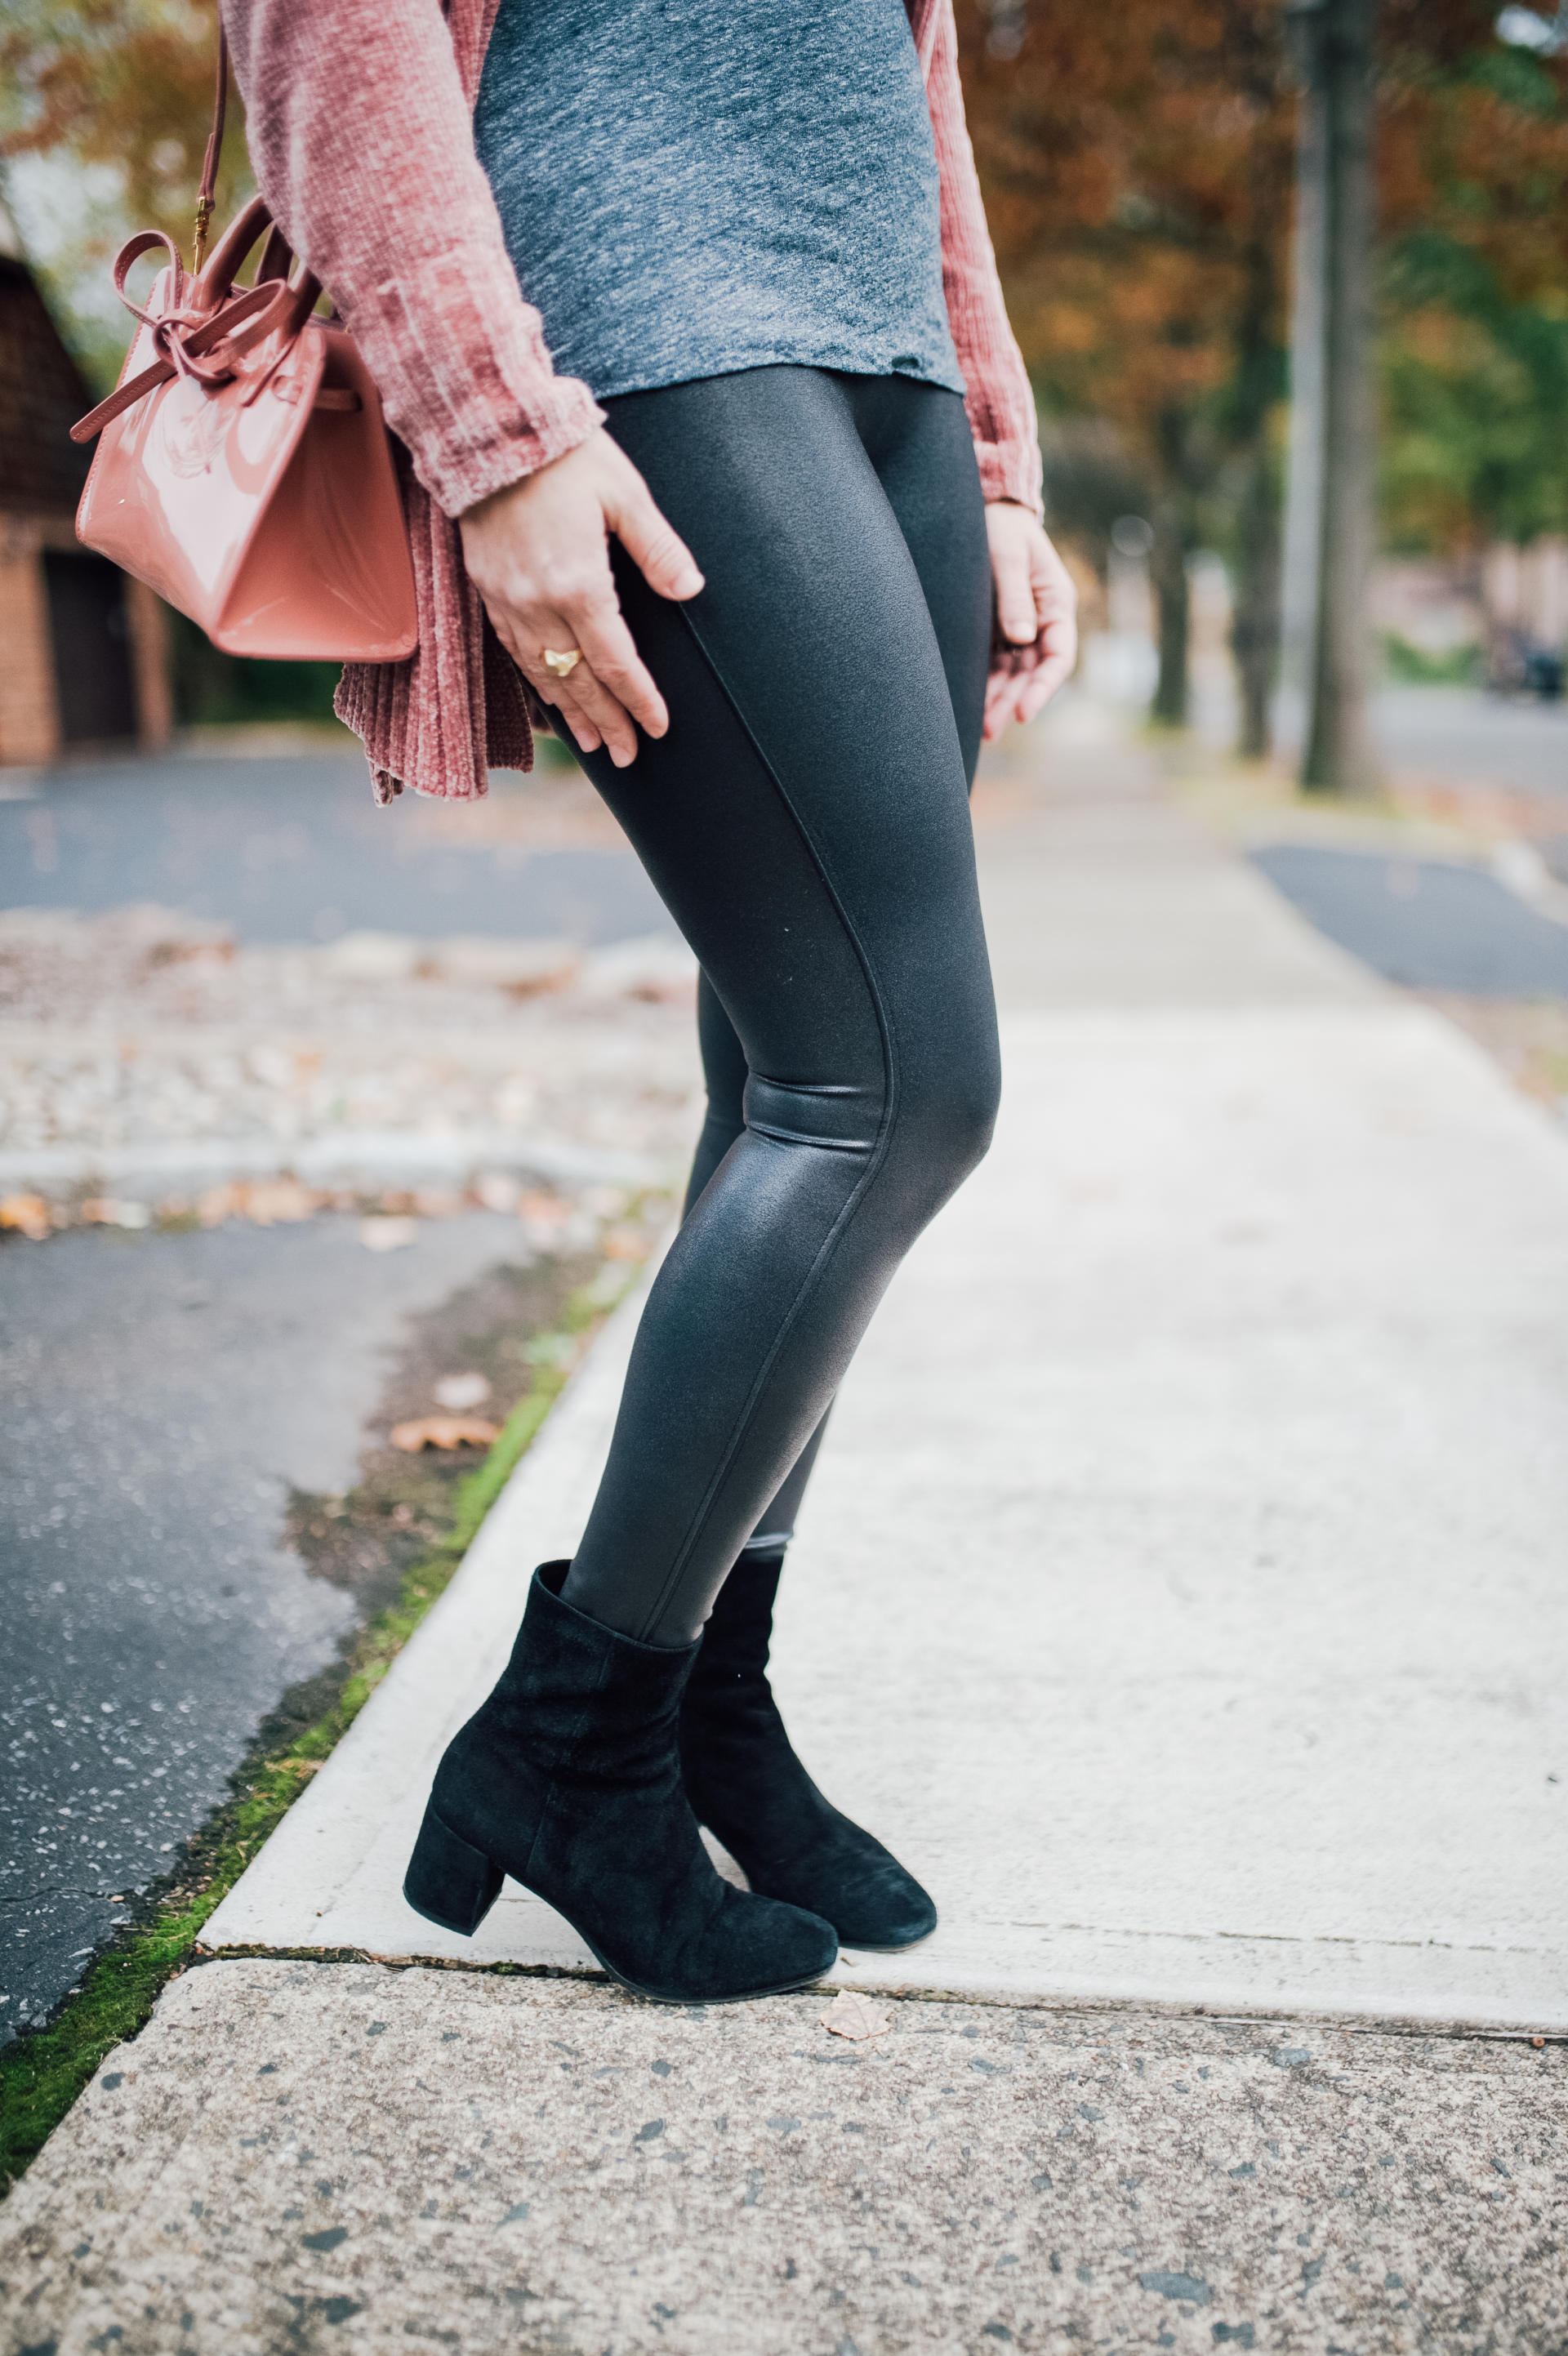 Spanx Black Leggings Are Girl's Best Friend by New Jersey style blogger What's For Dinner Esq.